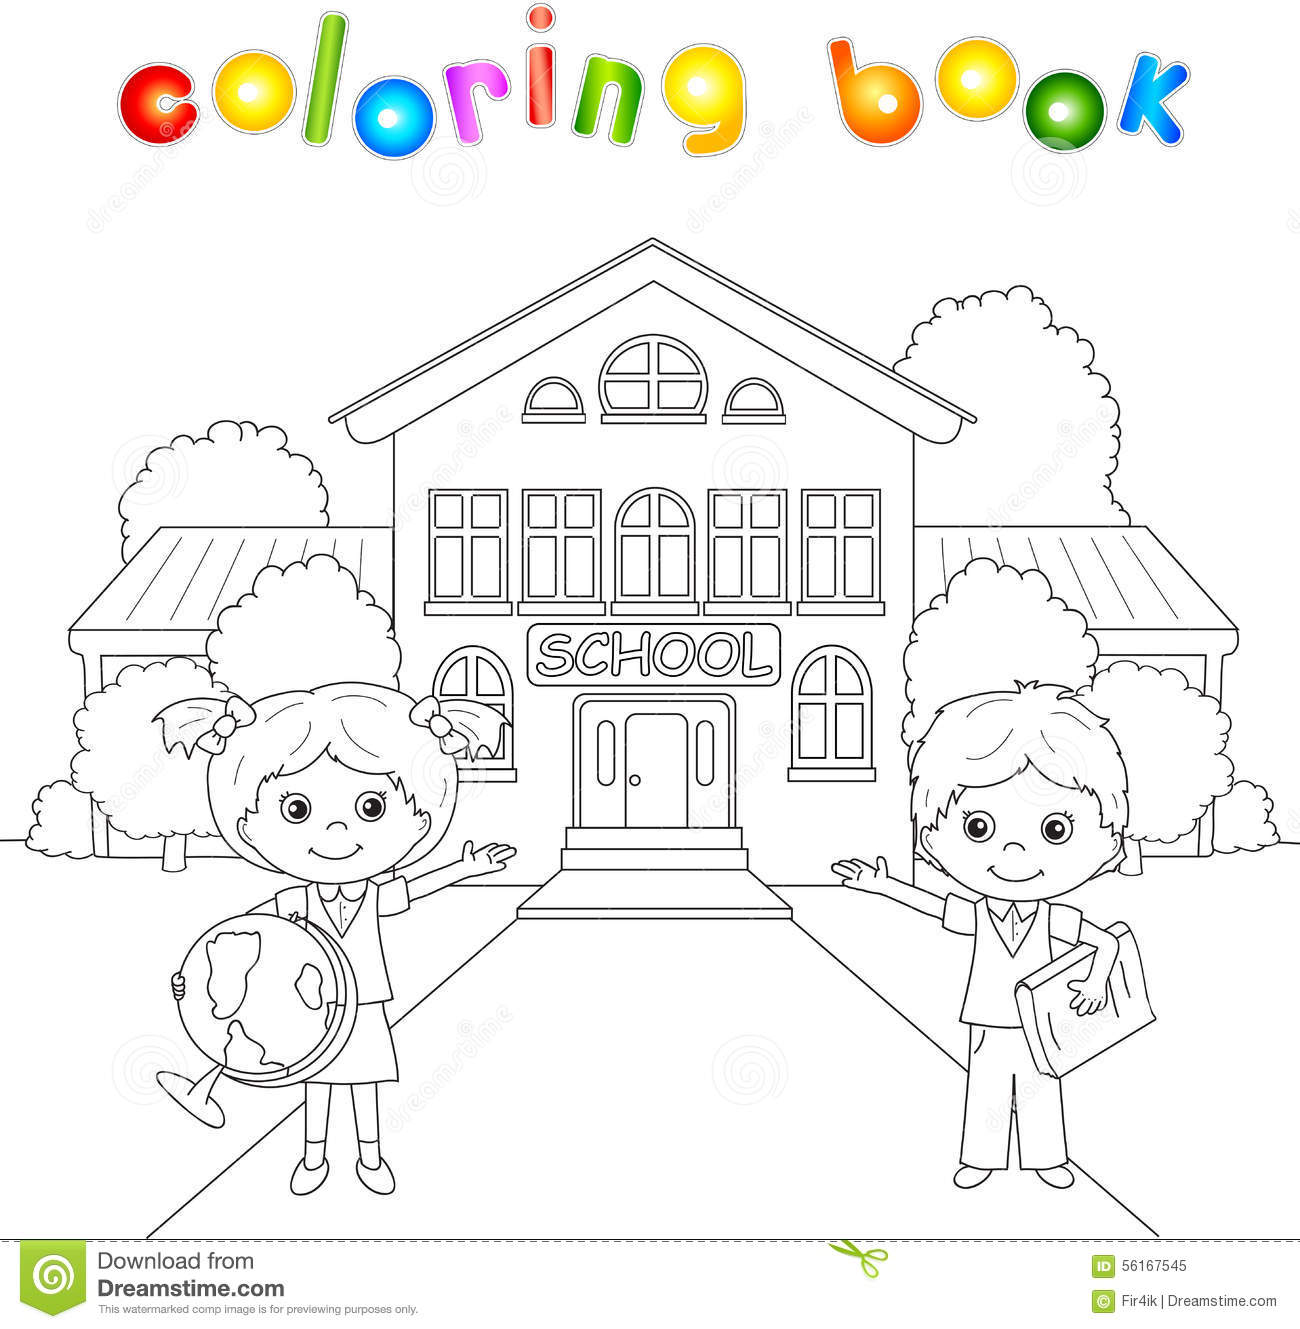 Coloring Book For College Crybabies Boy And Girl Standing Near The School Building In A